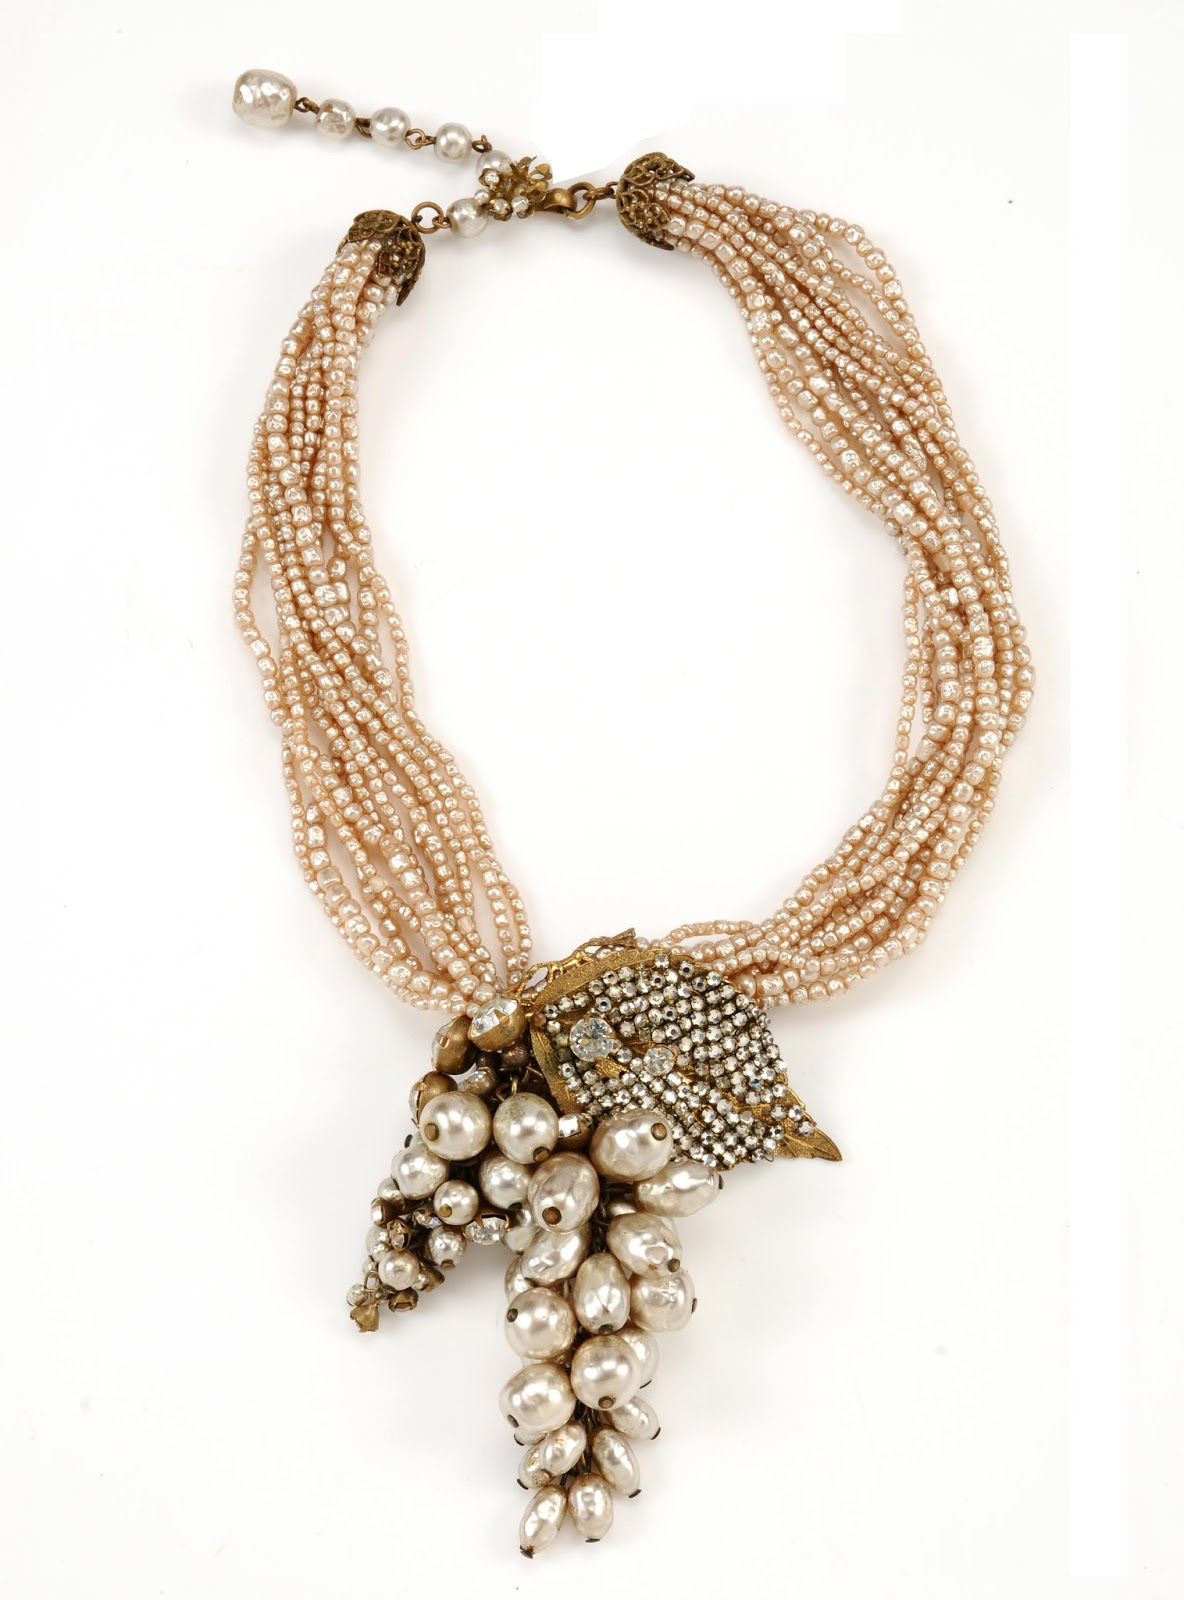 jewelry news network barbara berger s costume jewelry